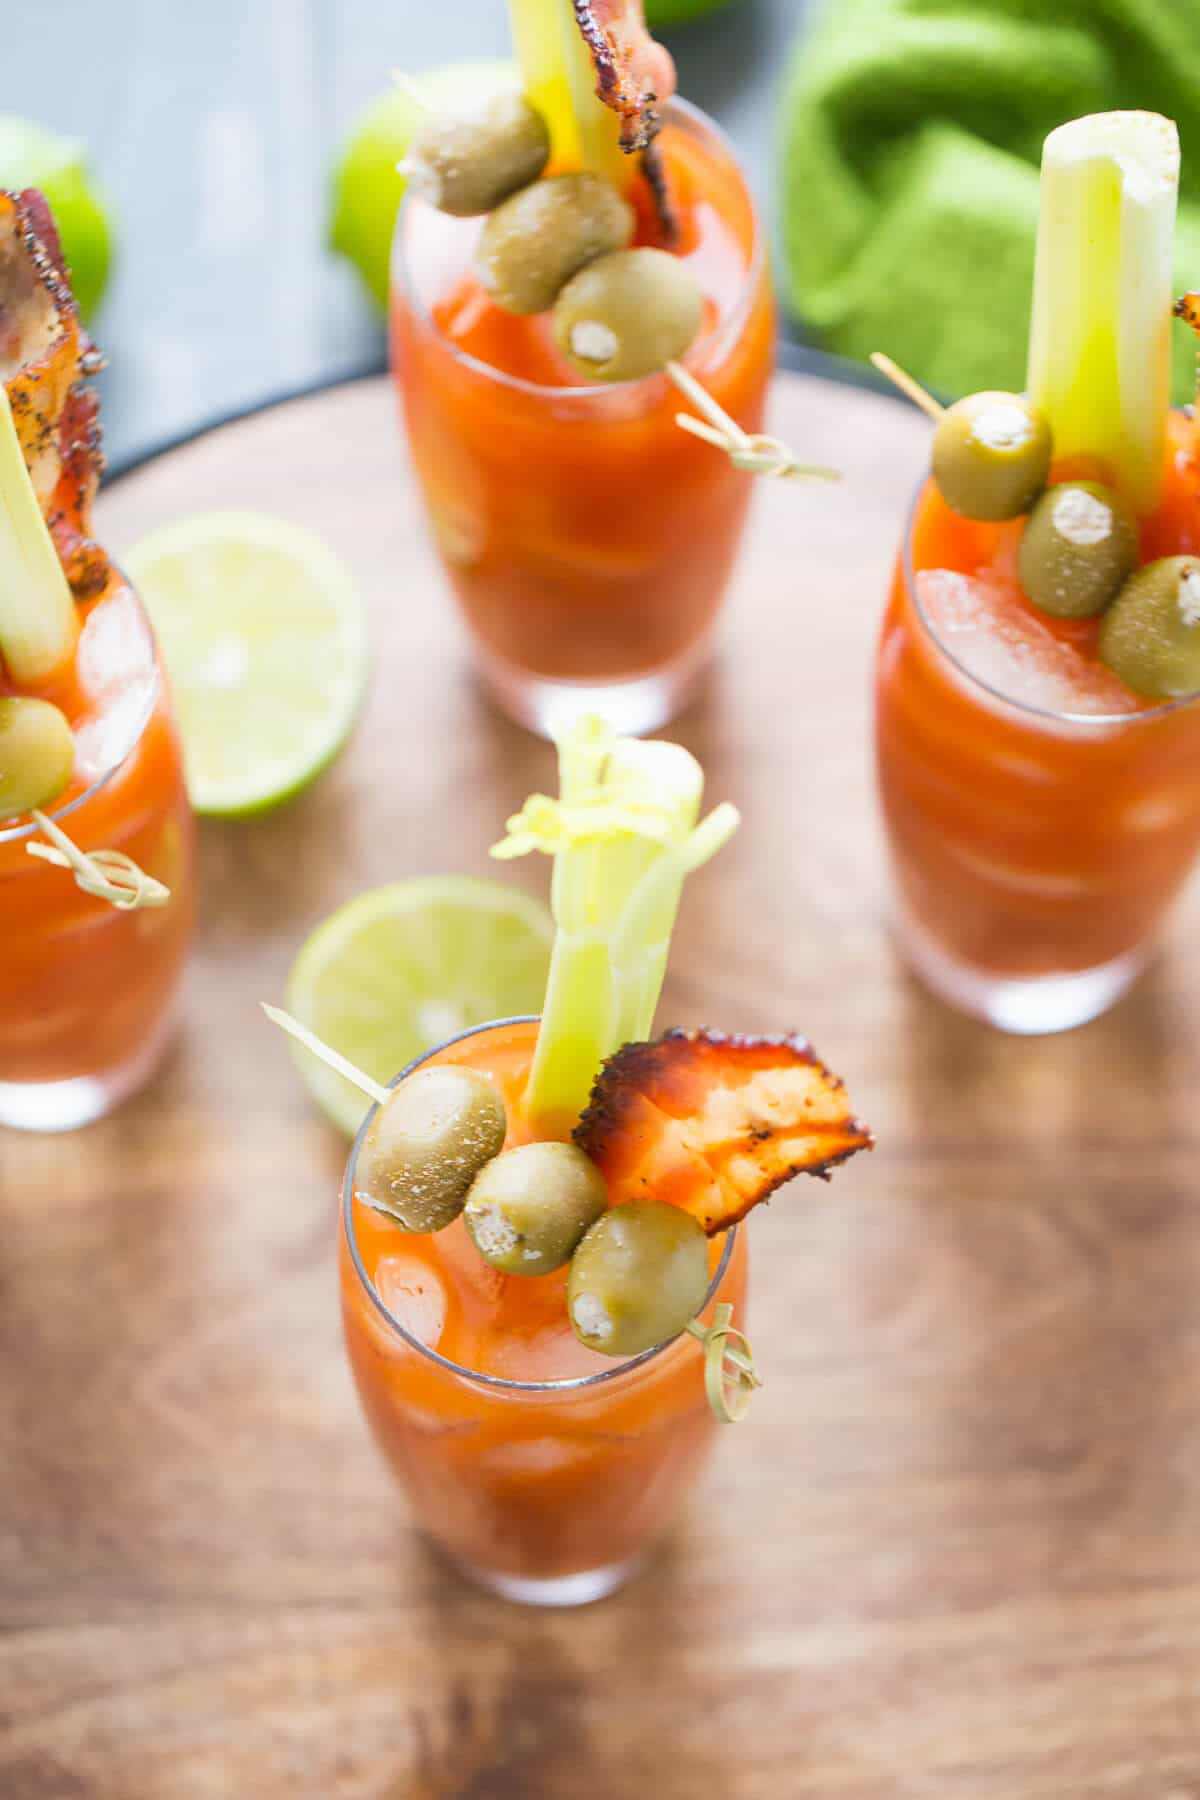 This spicy Bloody Mary is not for the faint of heart! Each sip is flavor filled and delicious! lemonsforlulu.com